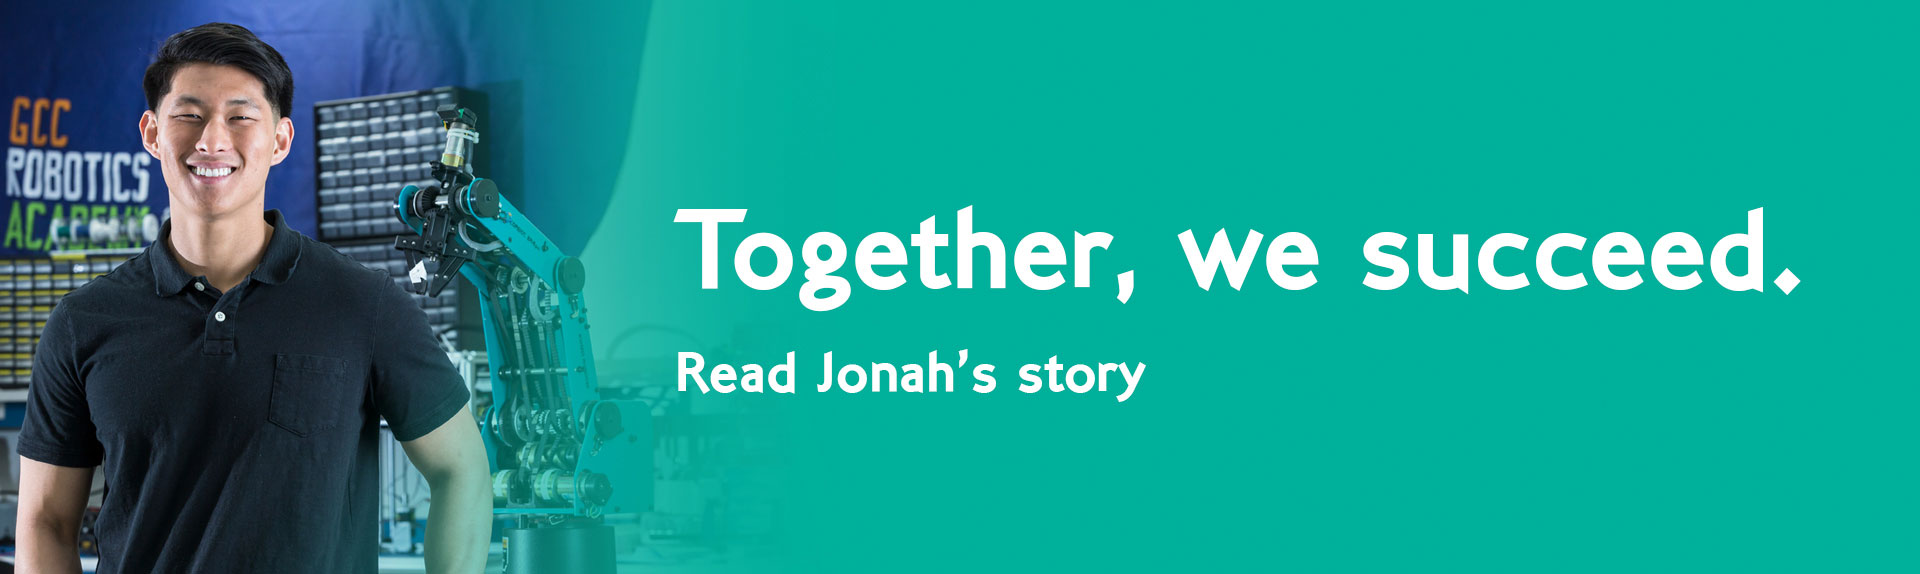 Together, we succeed. Read Jonah's story